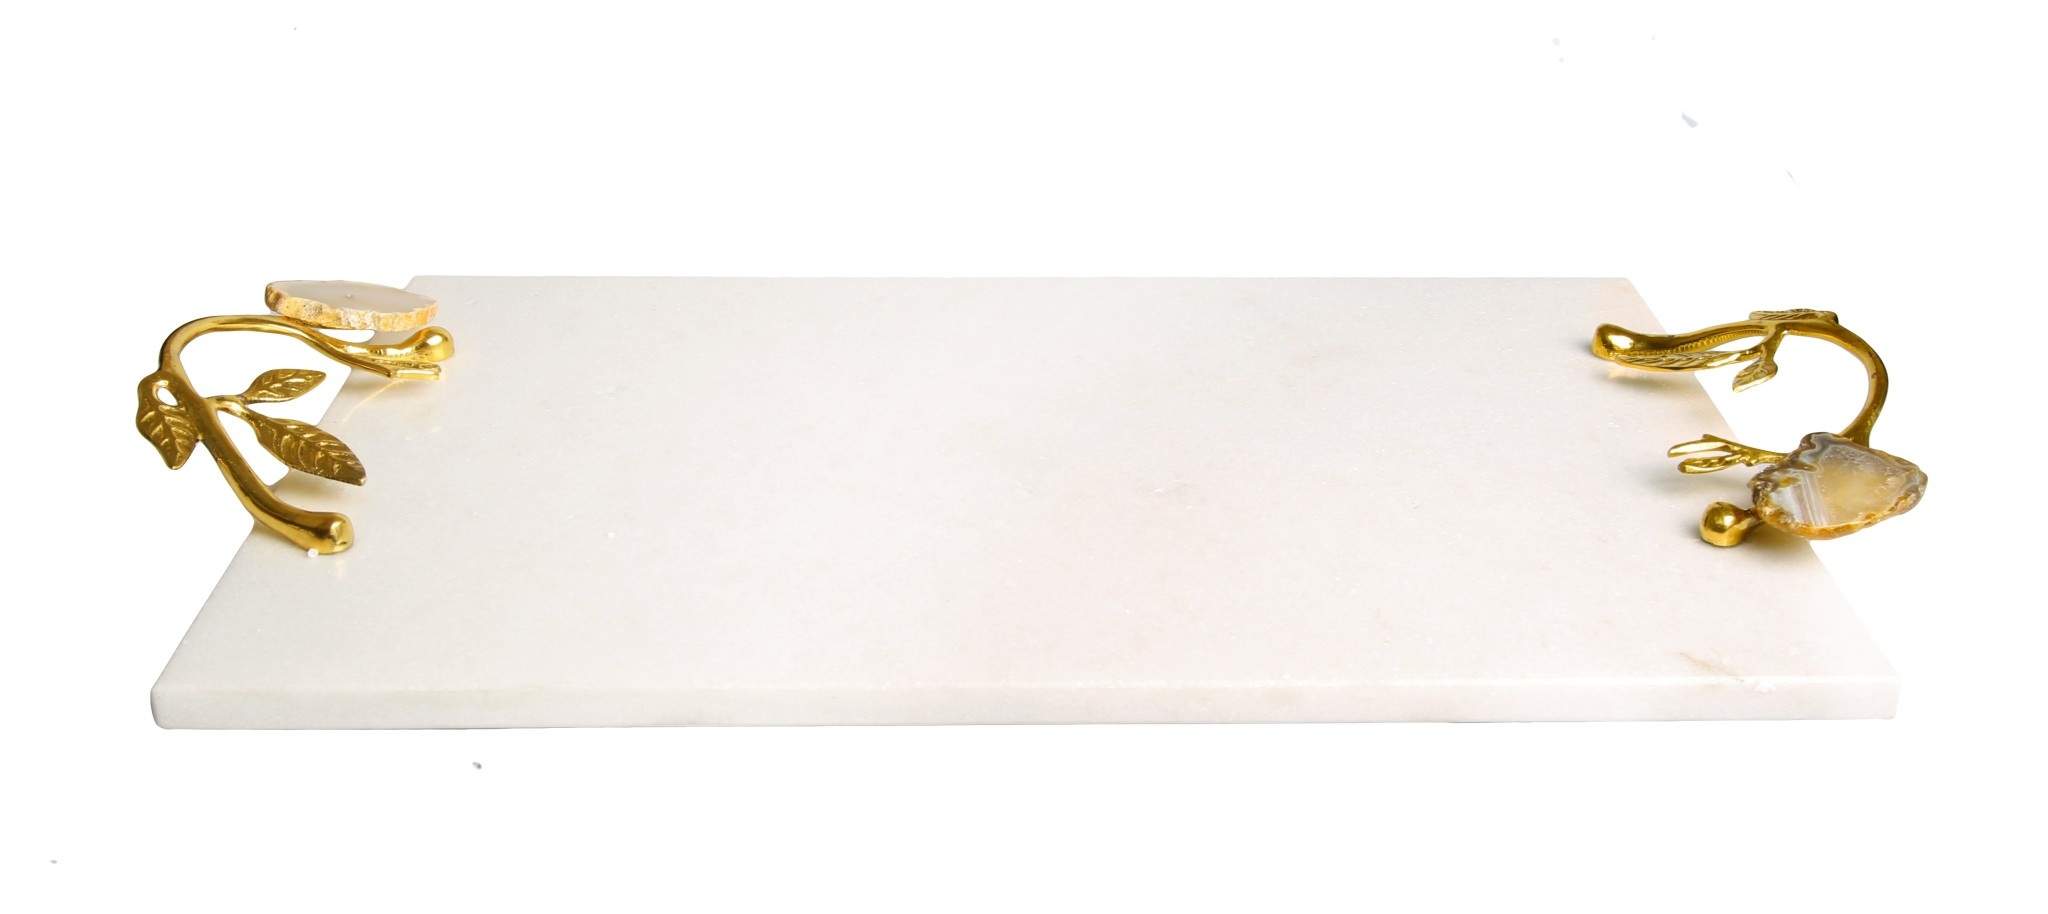 Marble Challah board with Agate Stone Handles